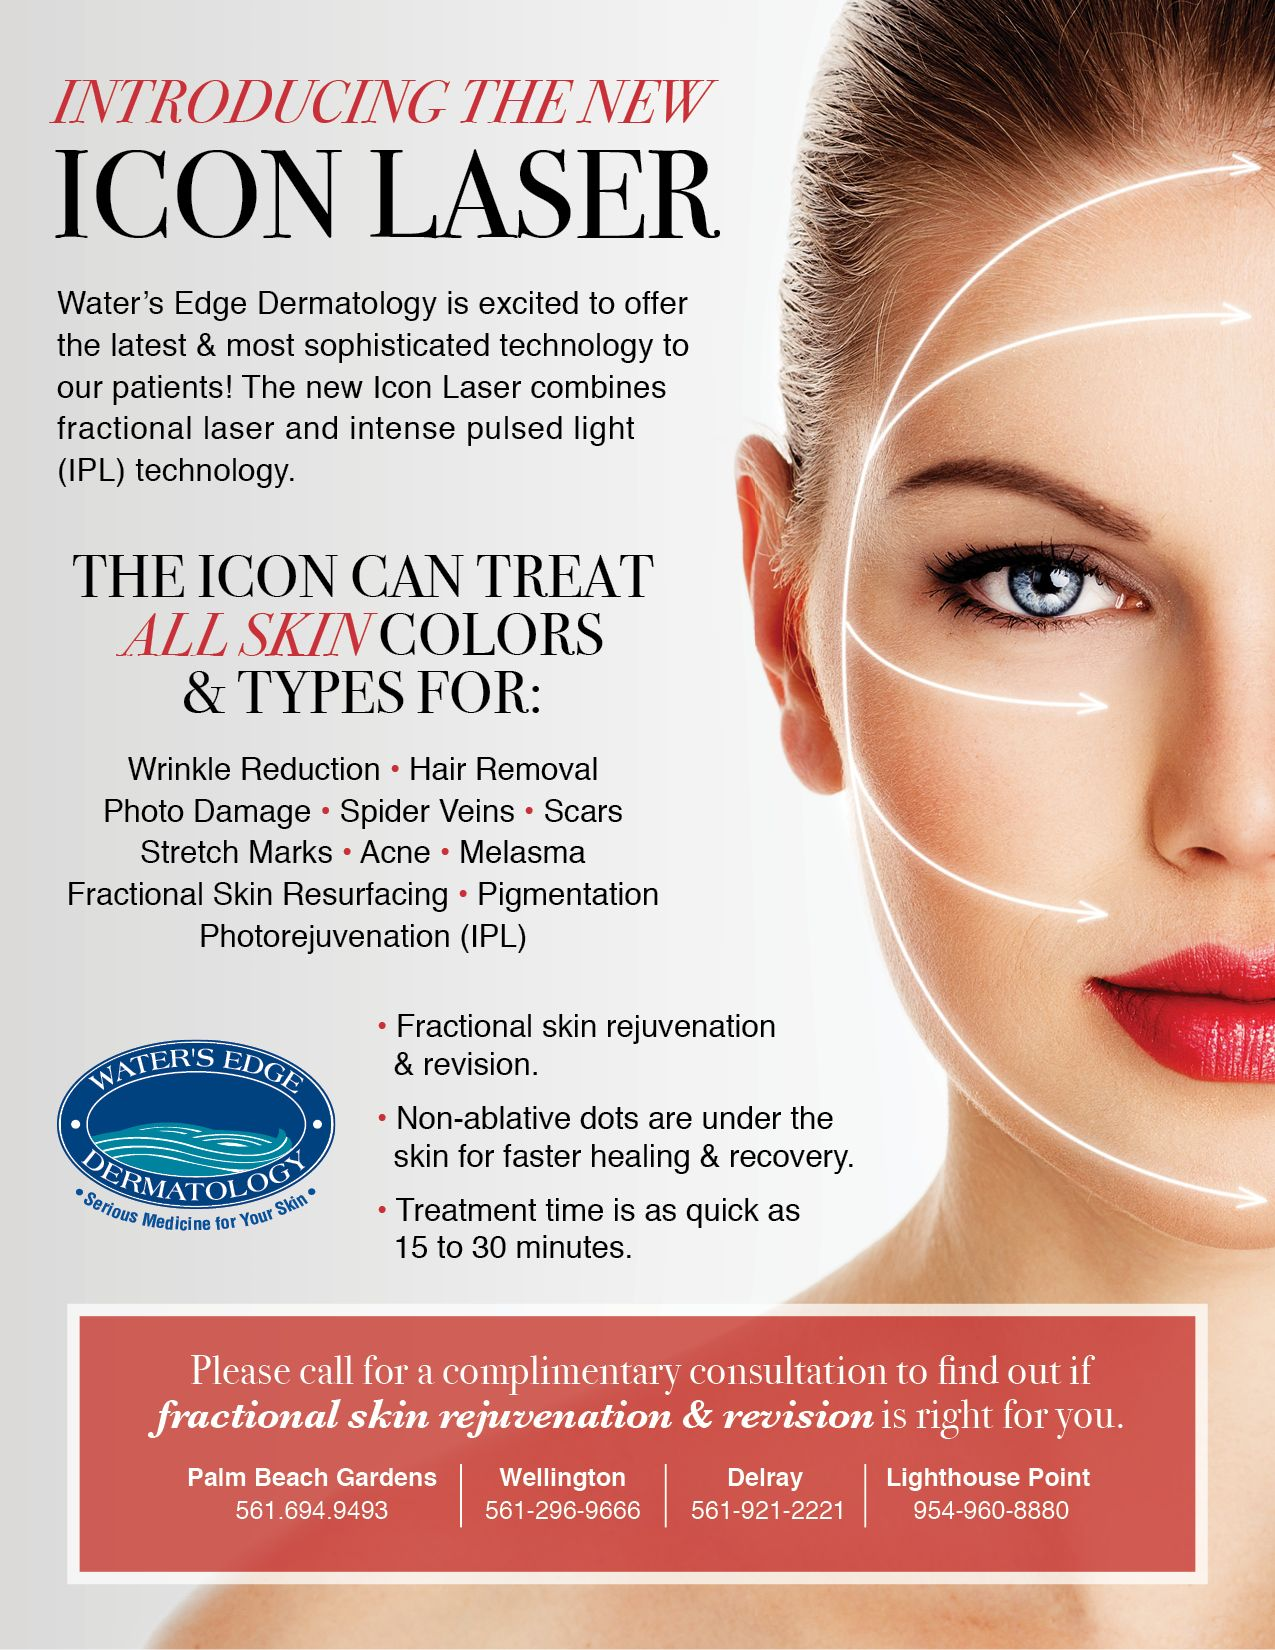 640d23b60bba499e7e1bb709fcd80133 - Beauty To Go Lasers Palm Beach Gardens